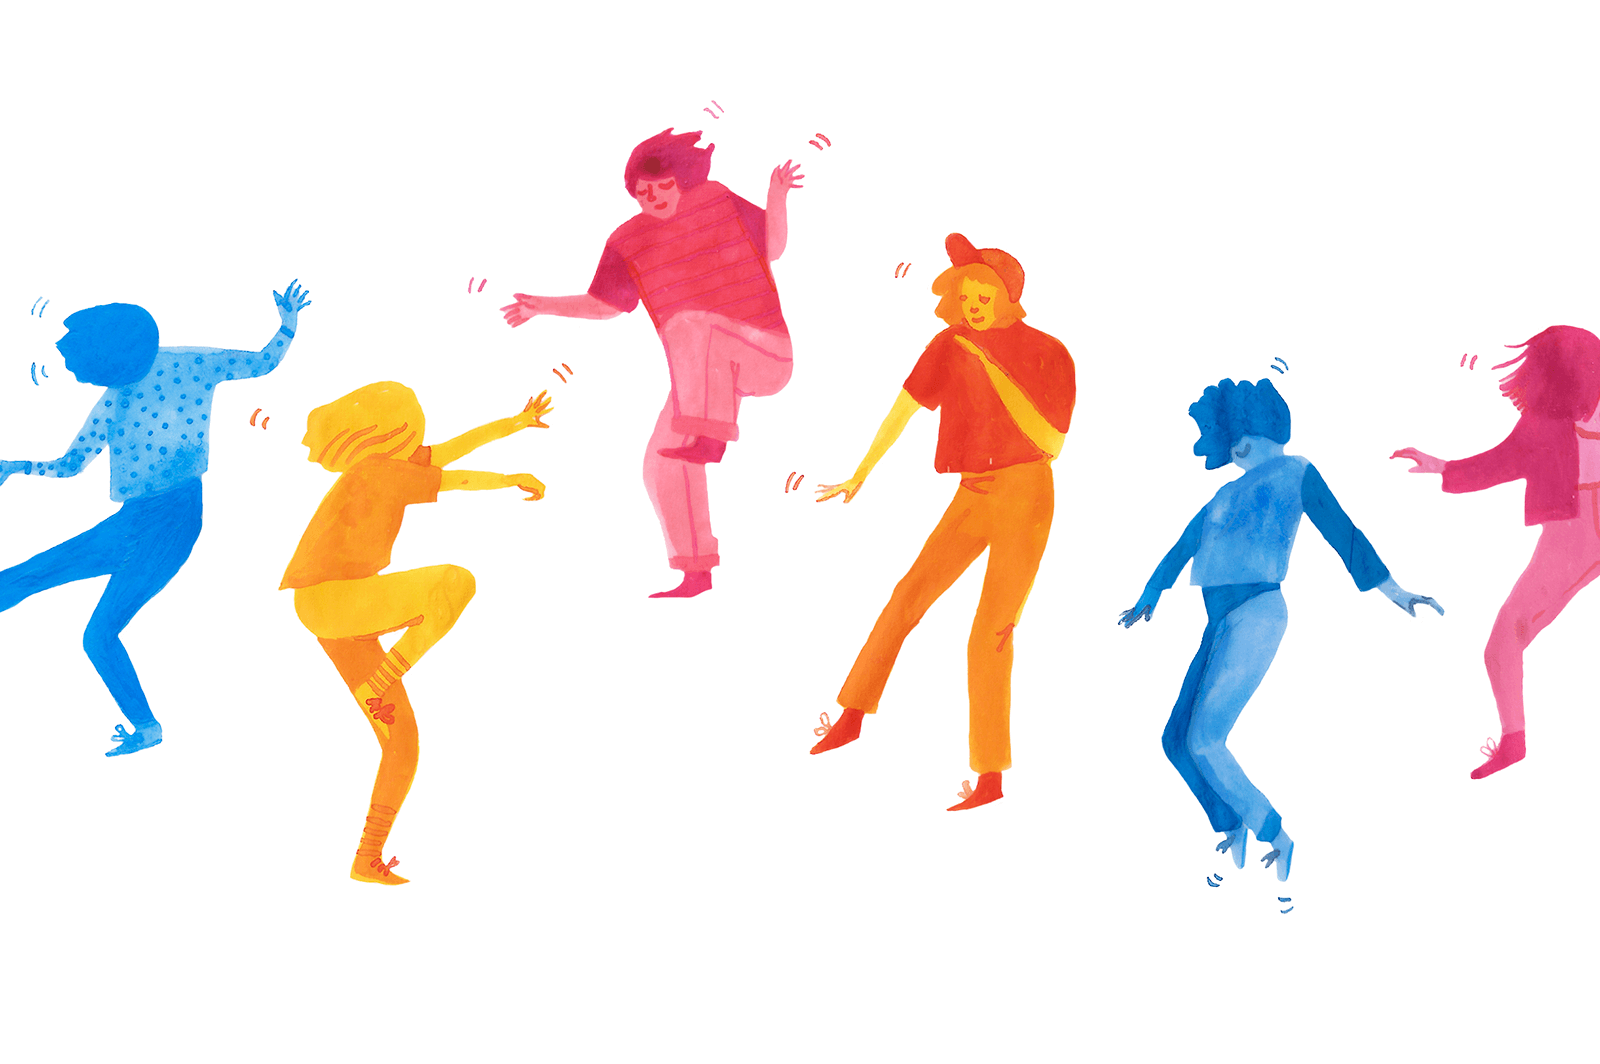 Illustrated characters dancing